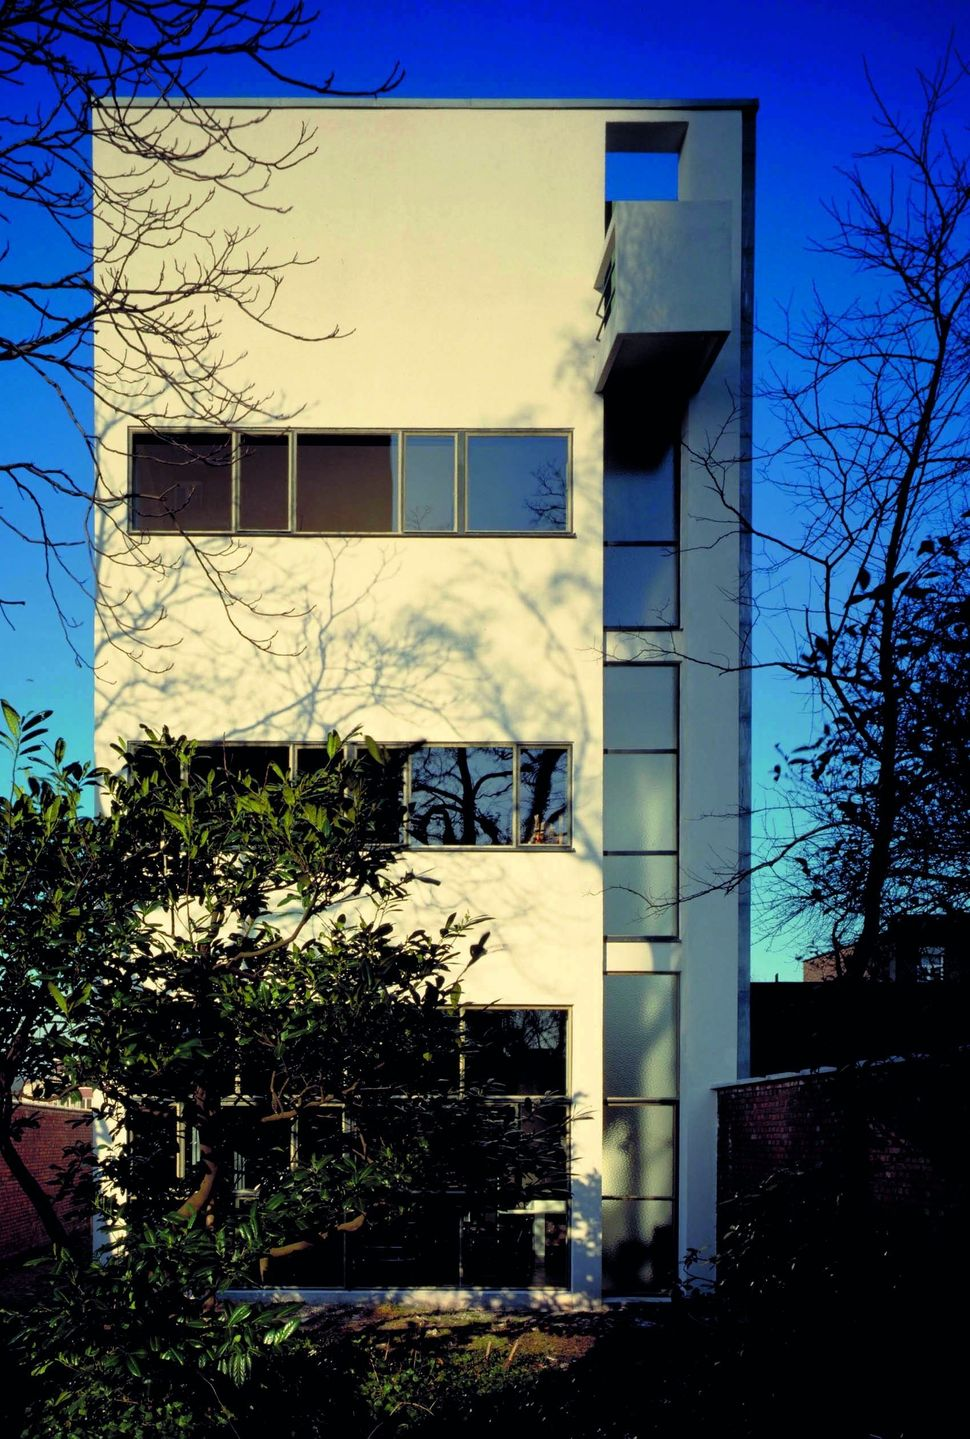 A home and studio Le Corbusier built for artist René Guiette in Antwerp, Belgium in 1926.